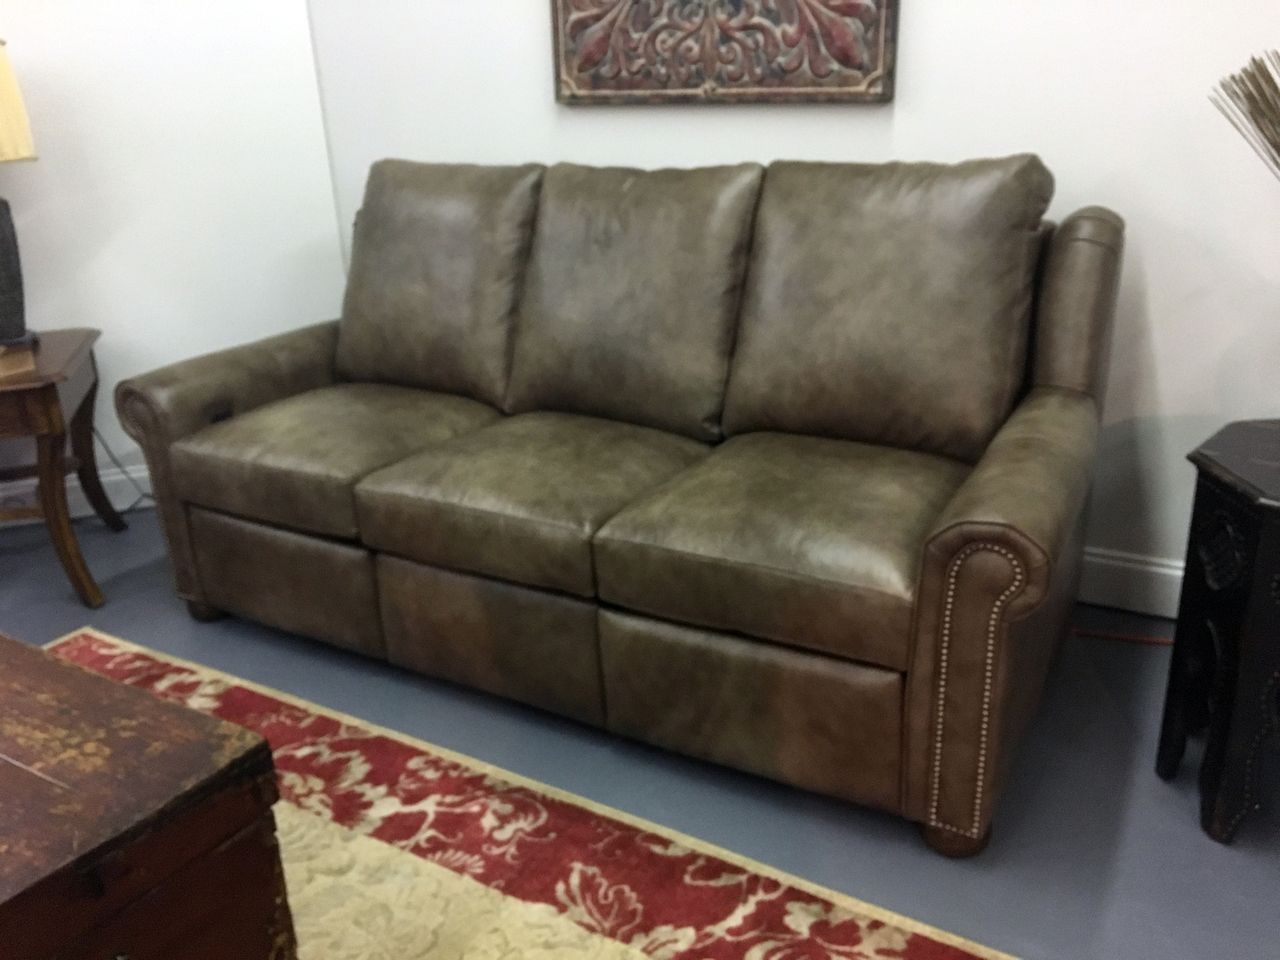 Frazier Recliner Sofa With Nails American Heritage Leather Made In The Usa